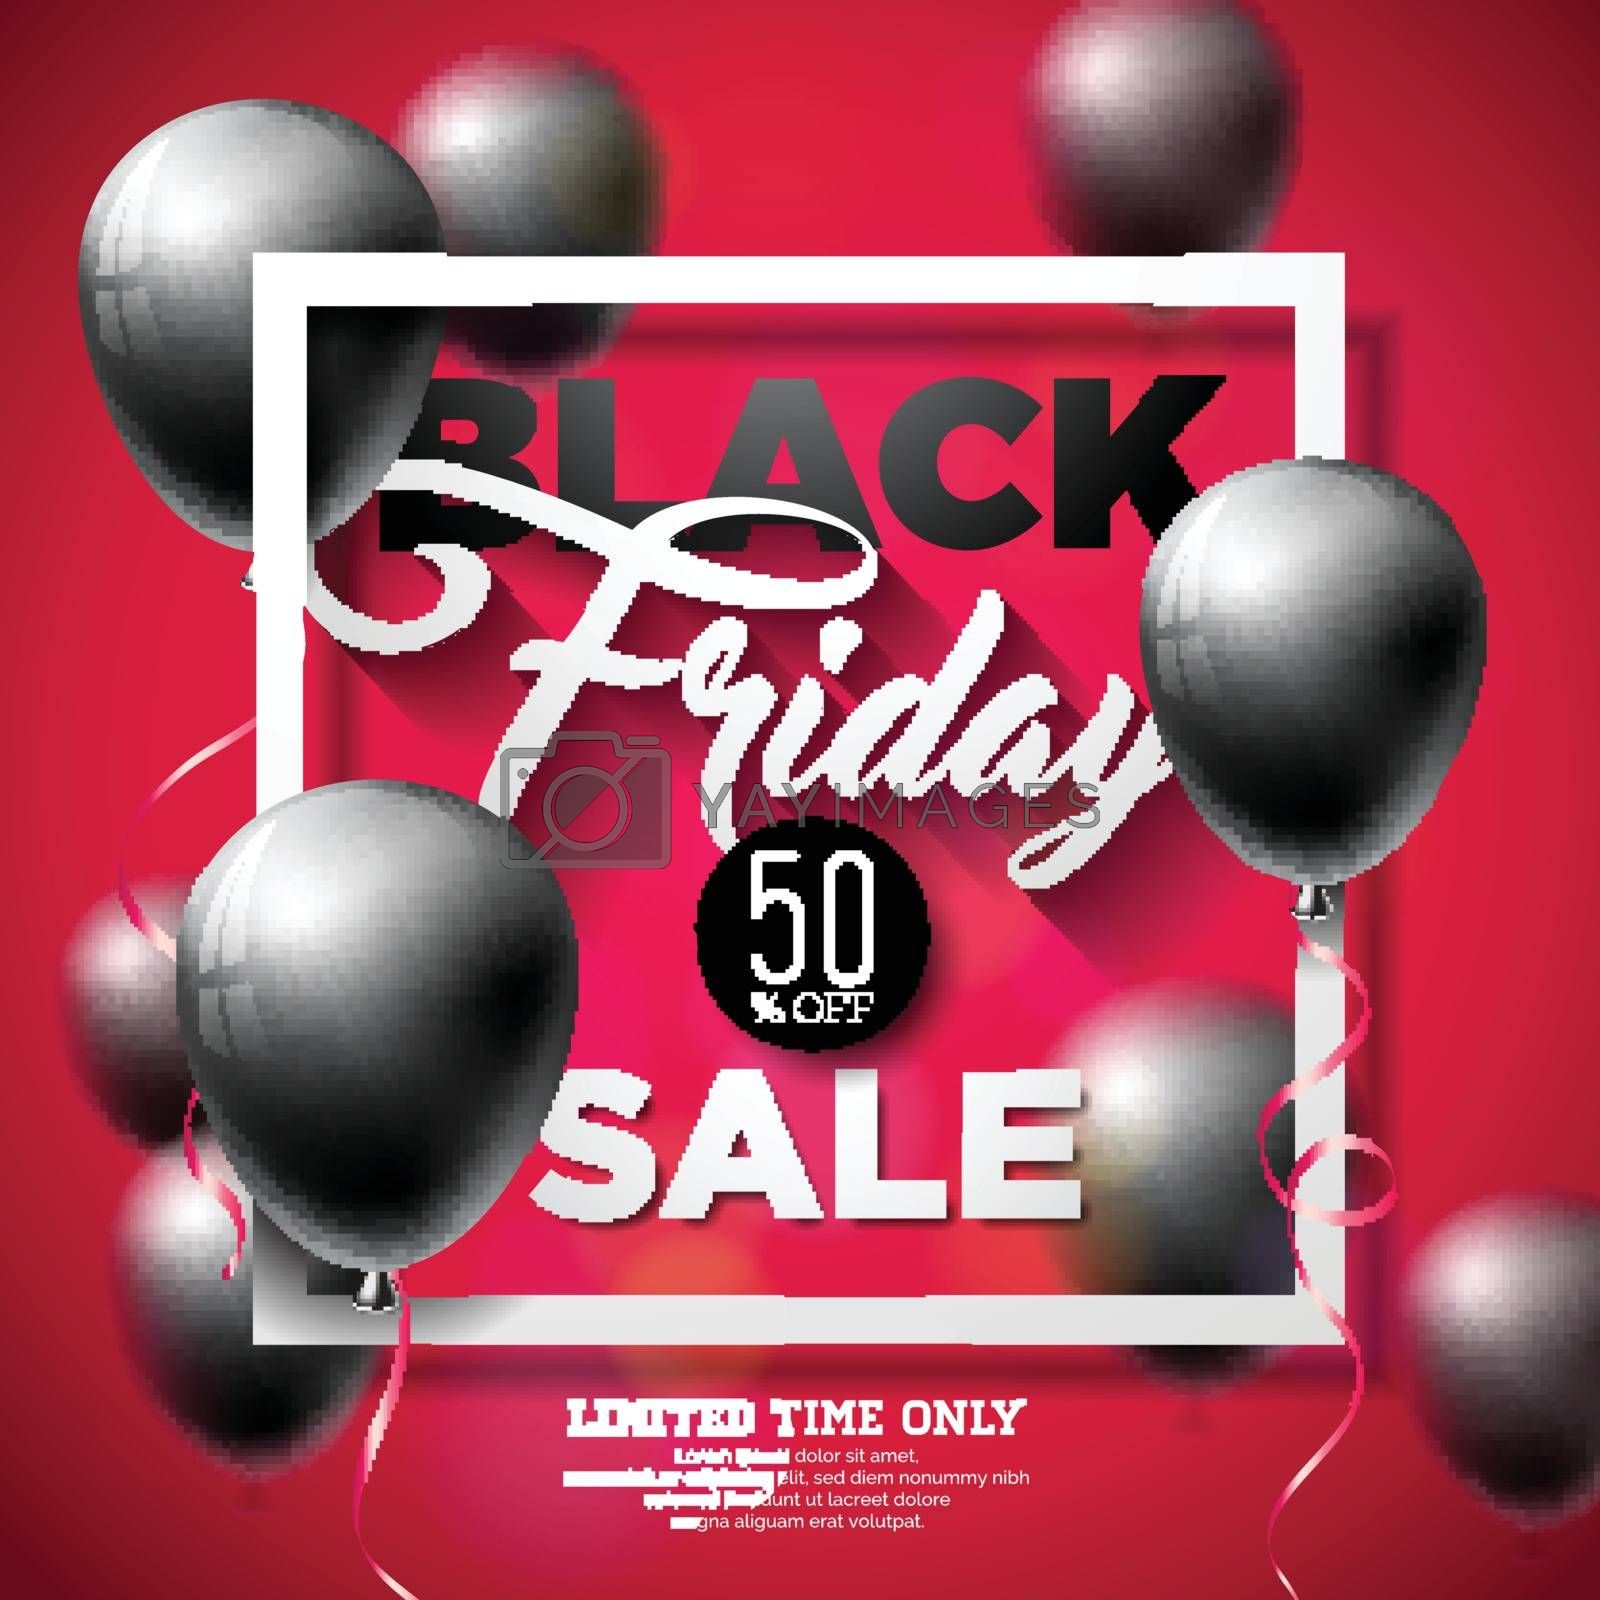 Black Friday Sale Vector Illustration with Shiny Balloons on Red Background. Promotion Design Template for Banner or Poster